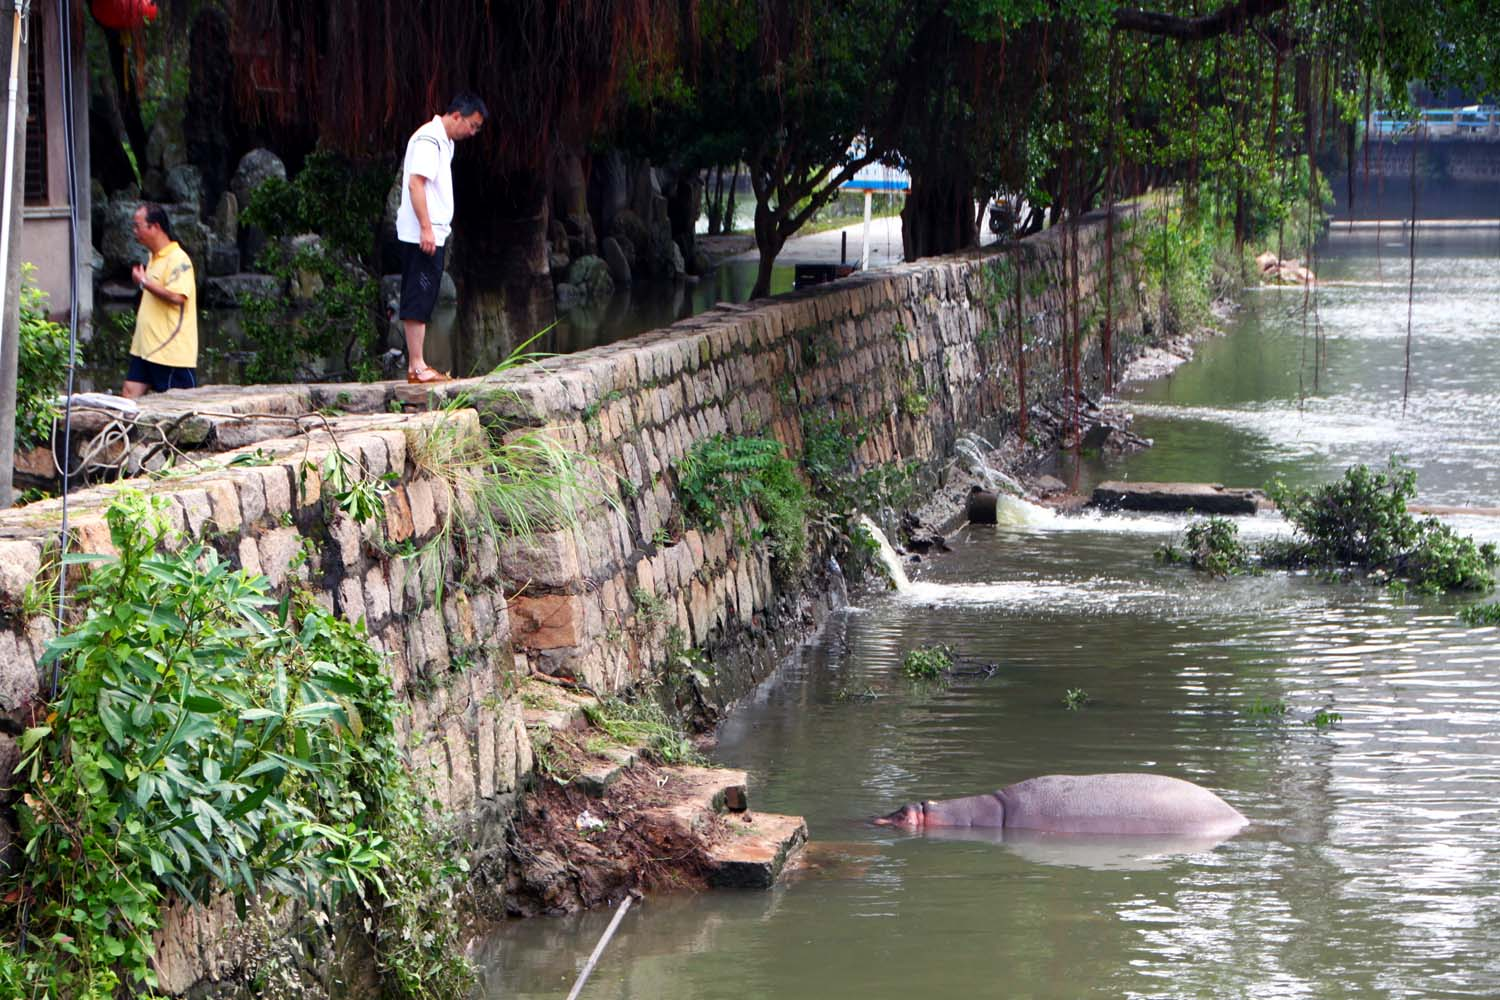 Sept. 23, 2013. A hippopotamus from Shantou Zoo swims in a nearby river after the zoo became submerged by flood waters, allowing the hippopotamus to swim across the zoo's boundary fence in Shantou, China.